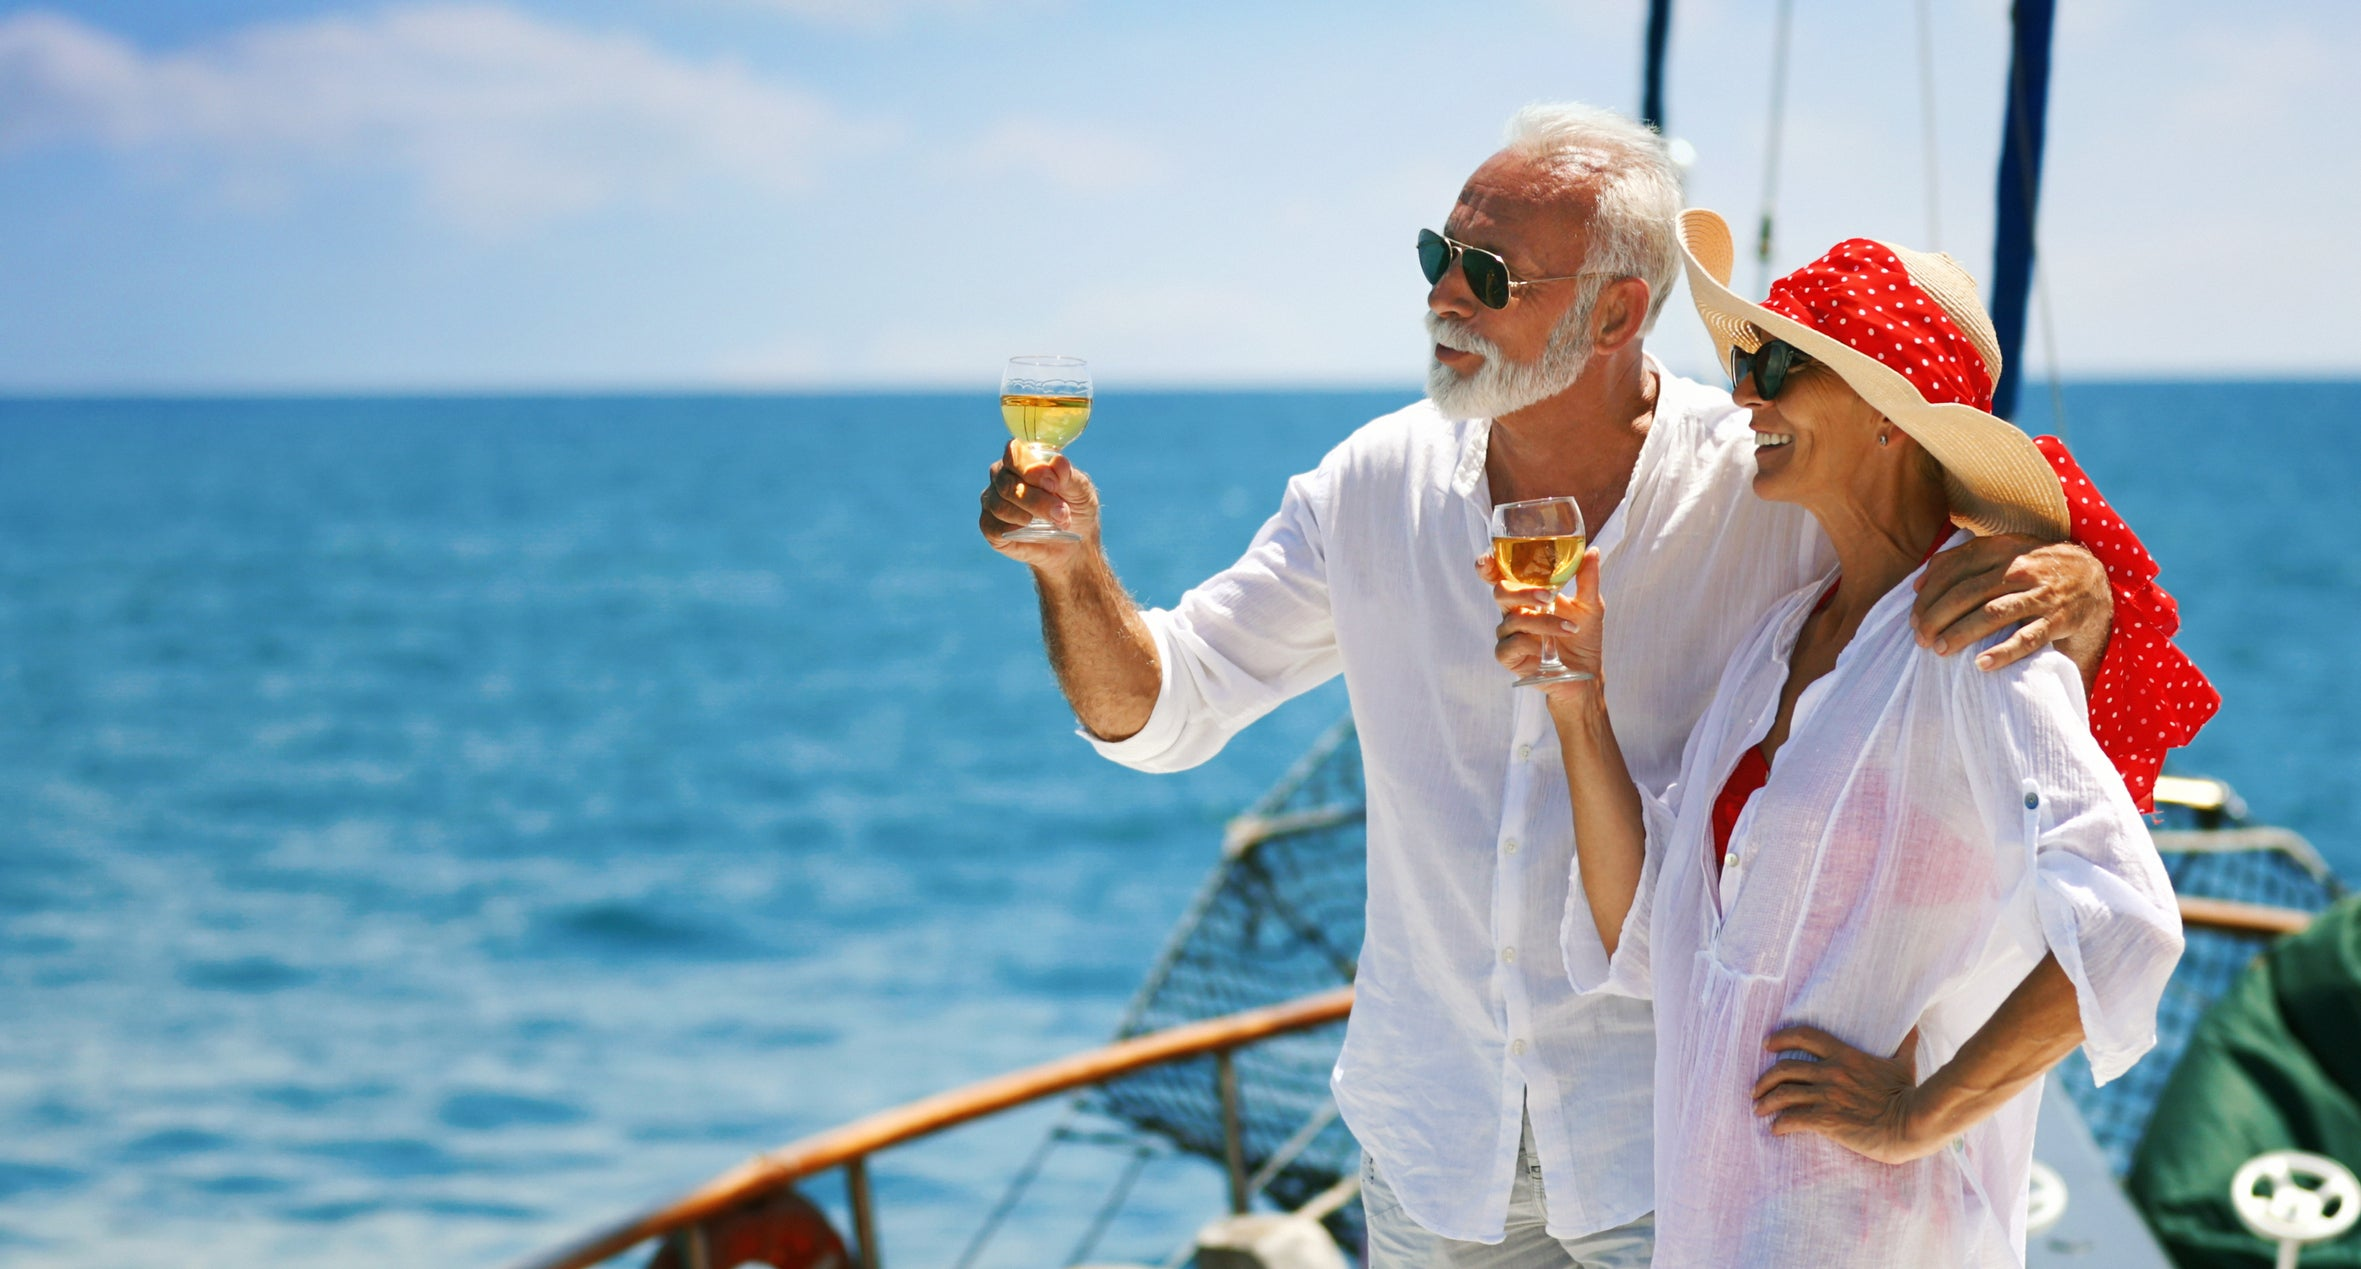 Earn $1,000 in Monthly Retirement Dividends With 5 Easy Steps